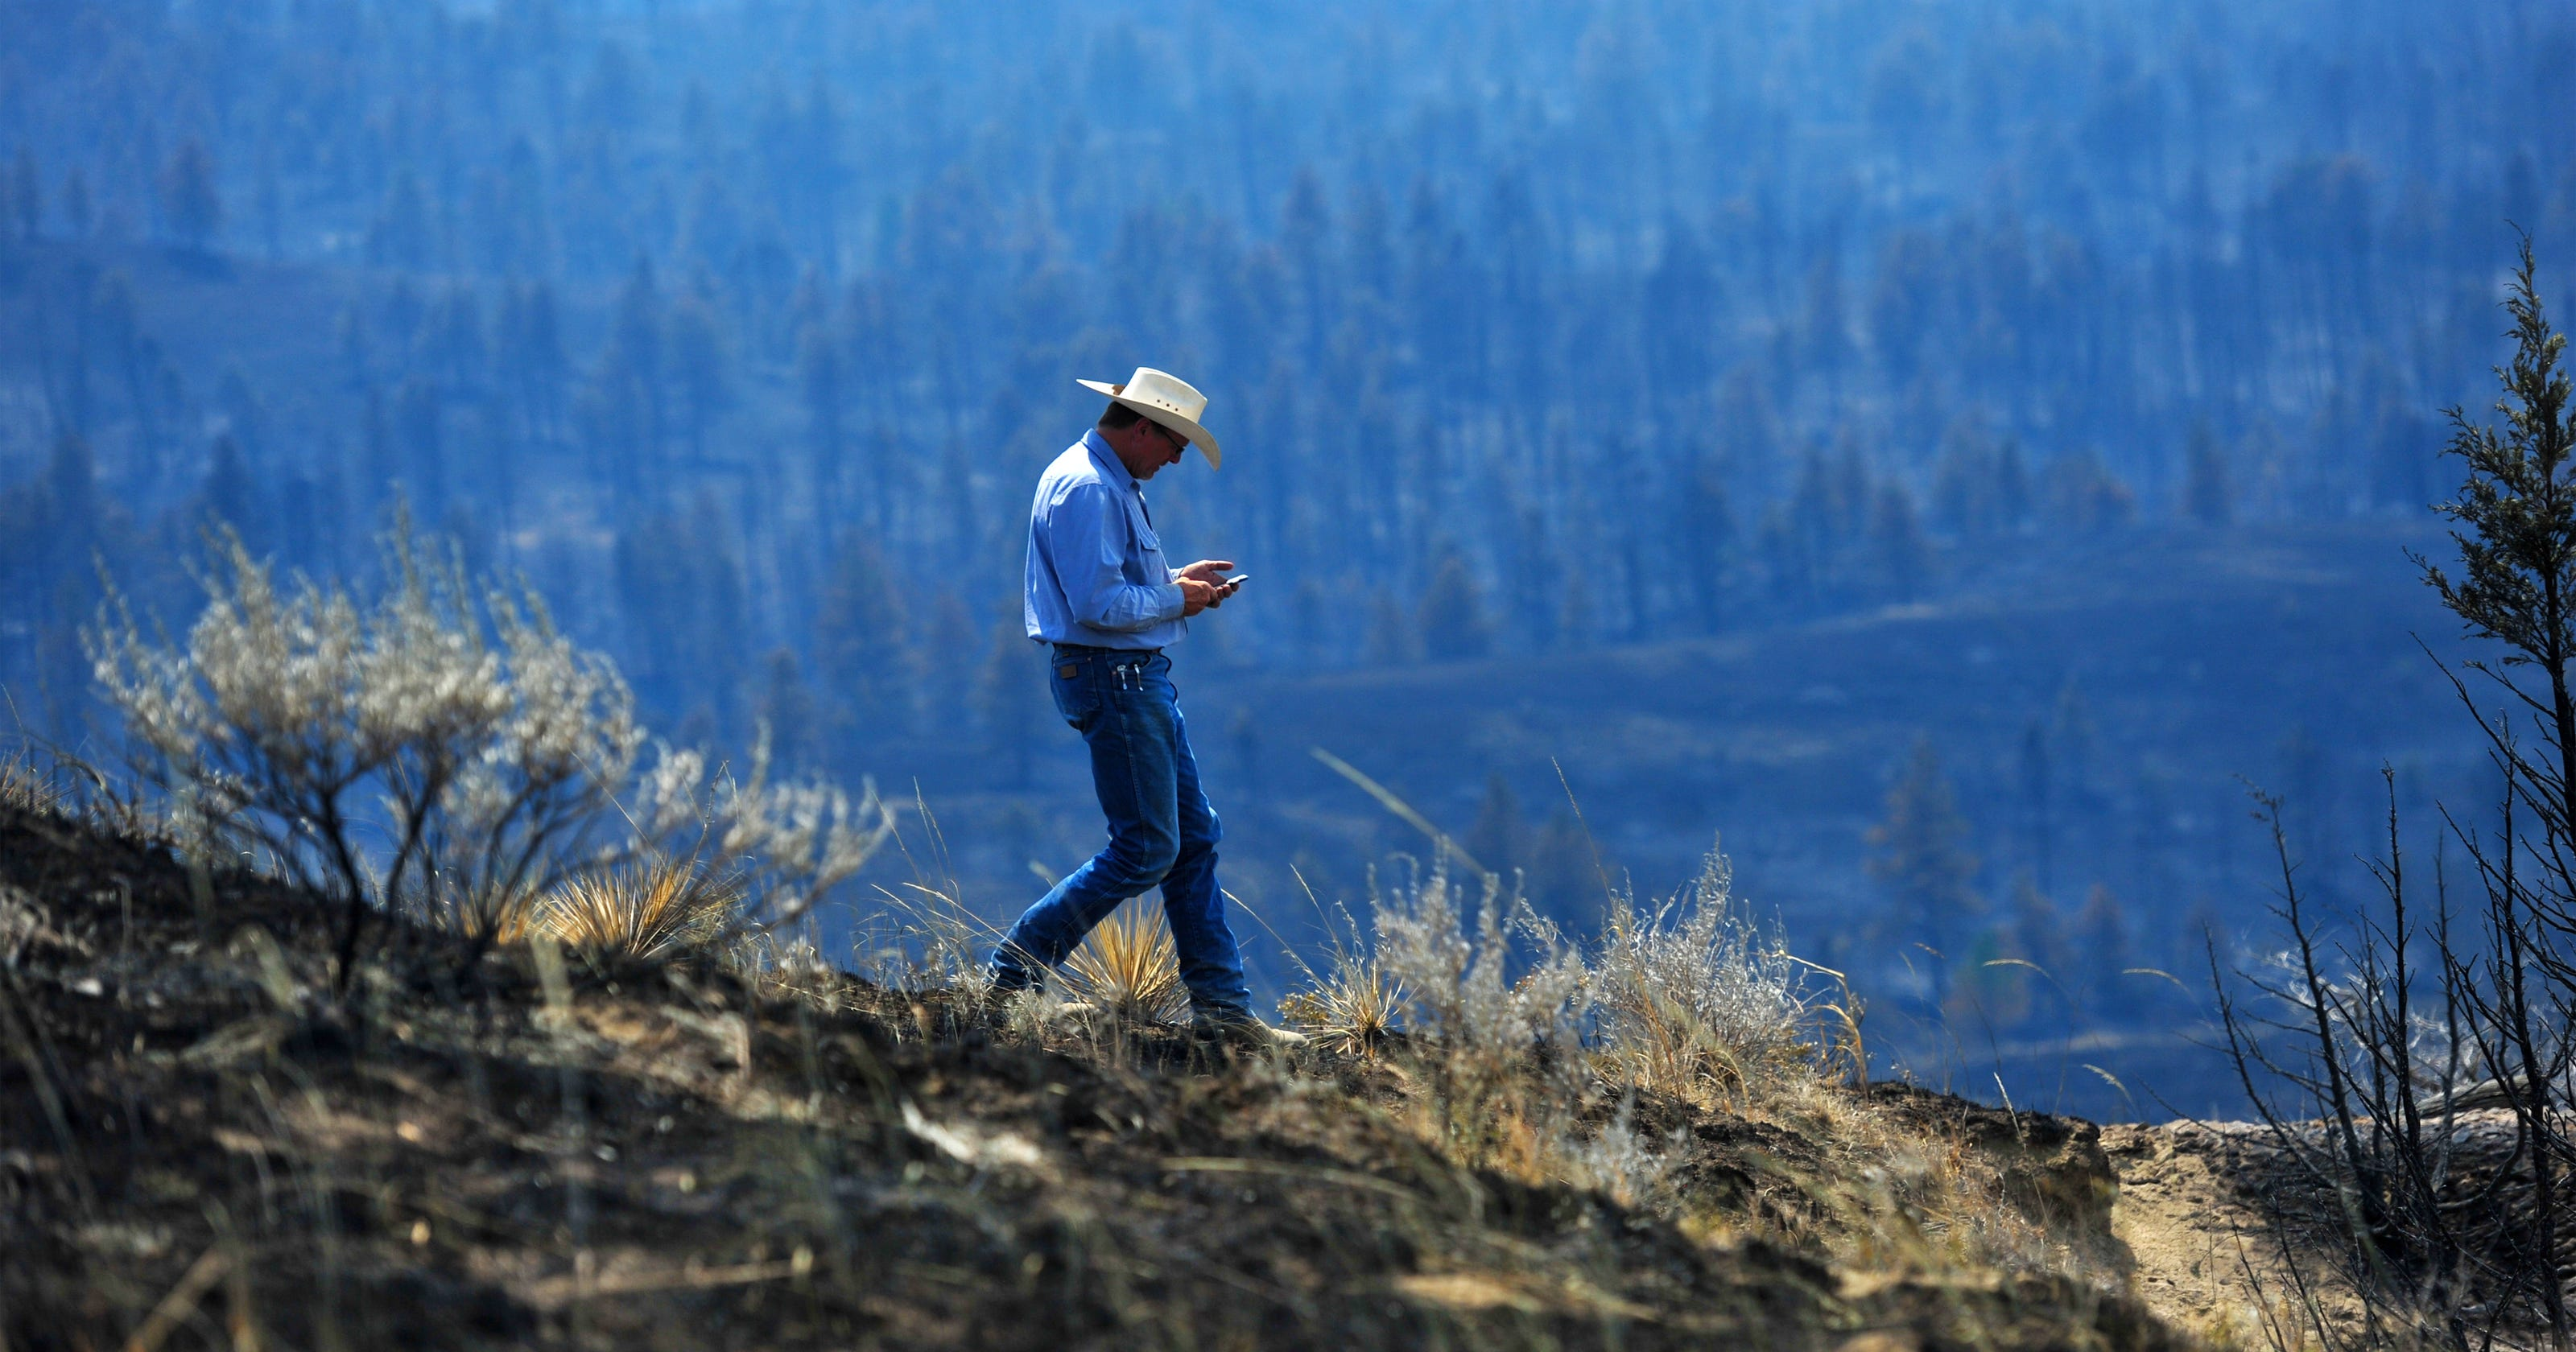 f8f0d1fc3 2017 year in review: Wildfires, Ryan Zinke dominate Montana headlines